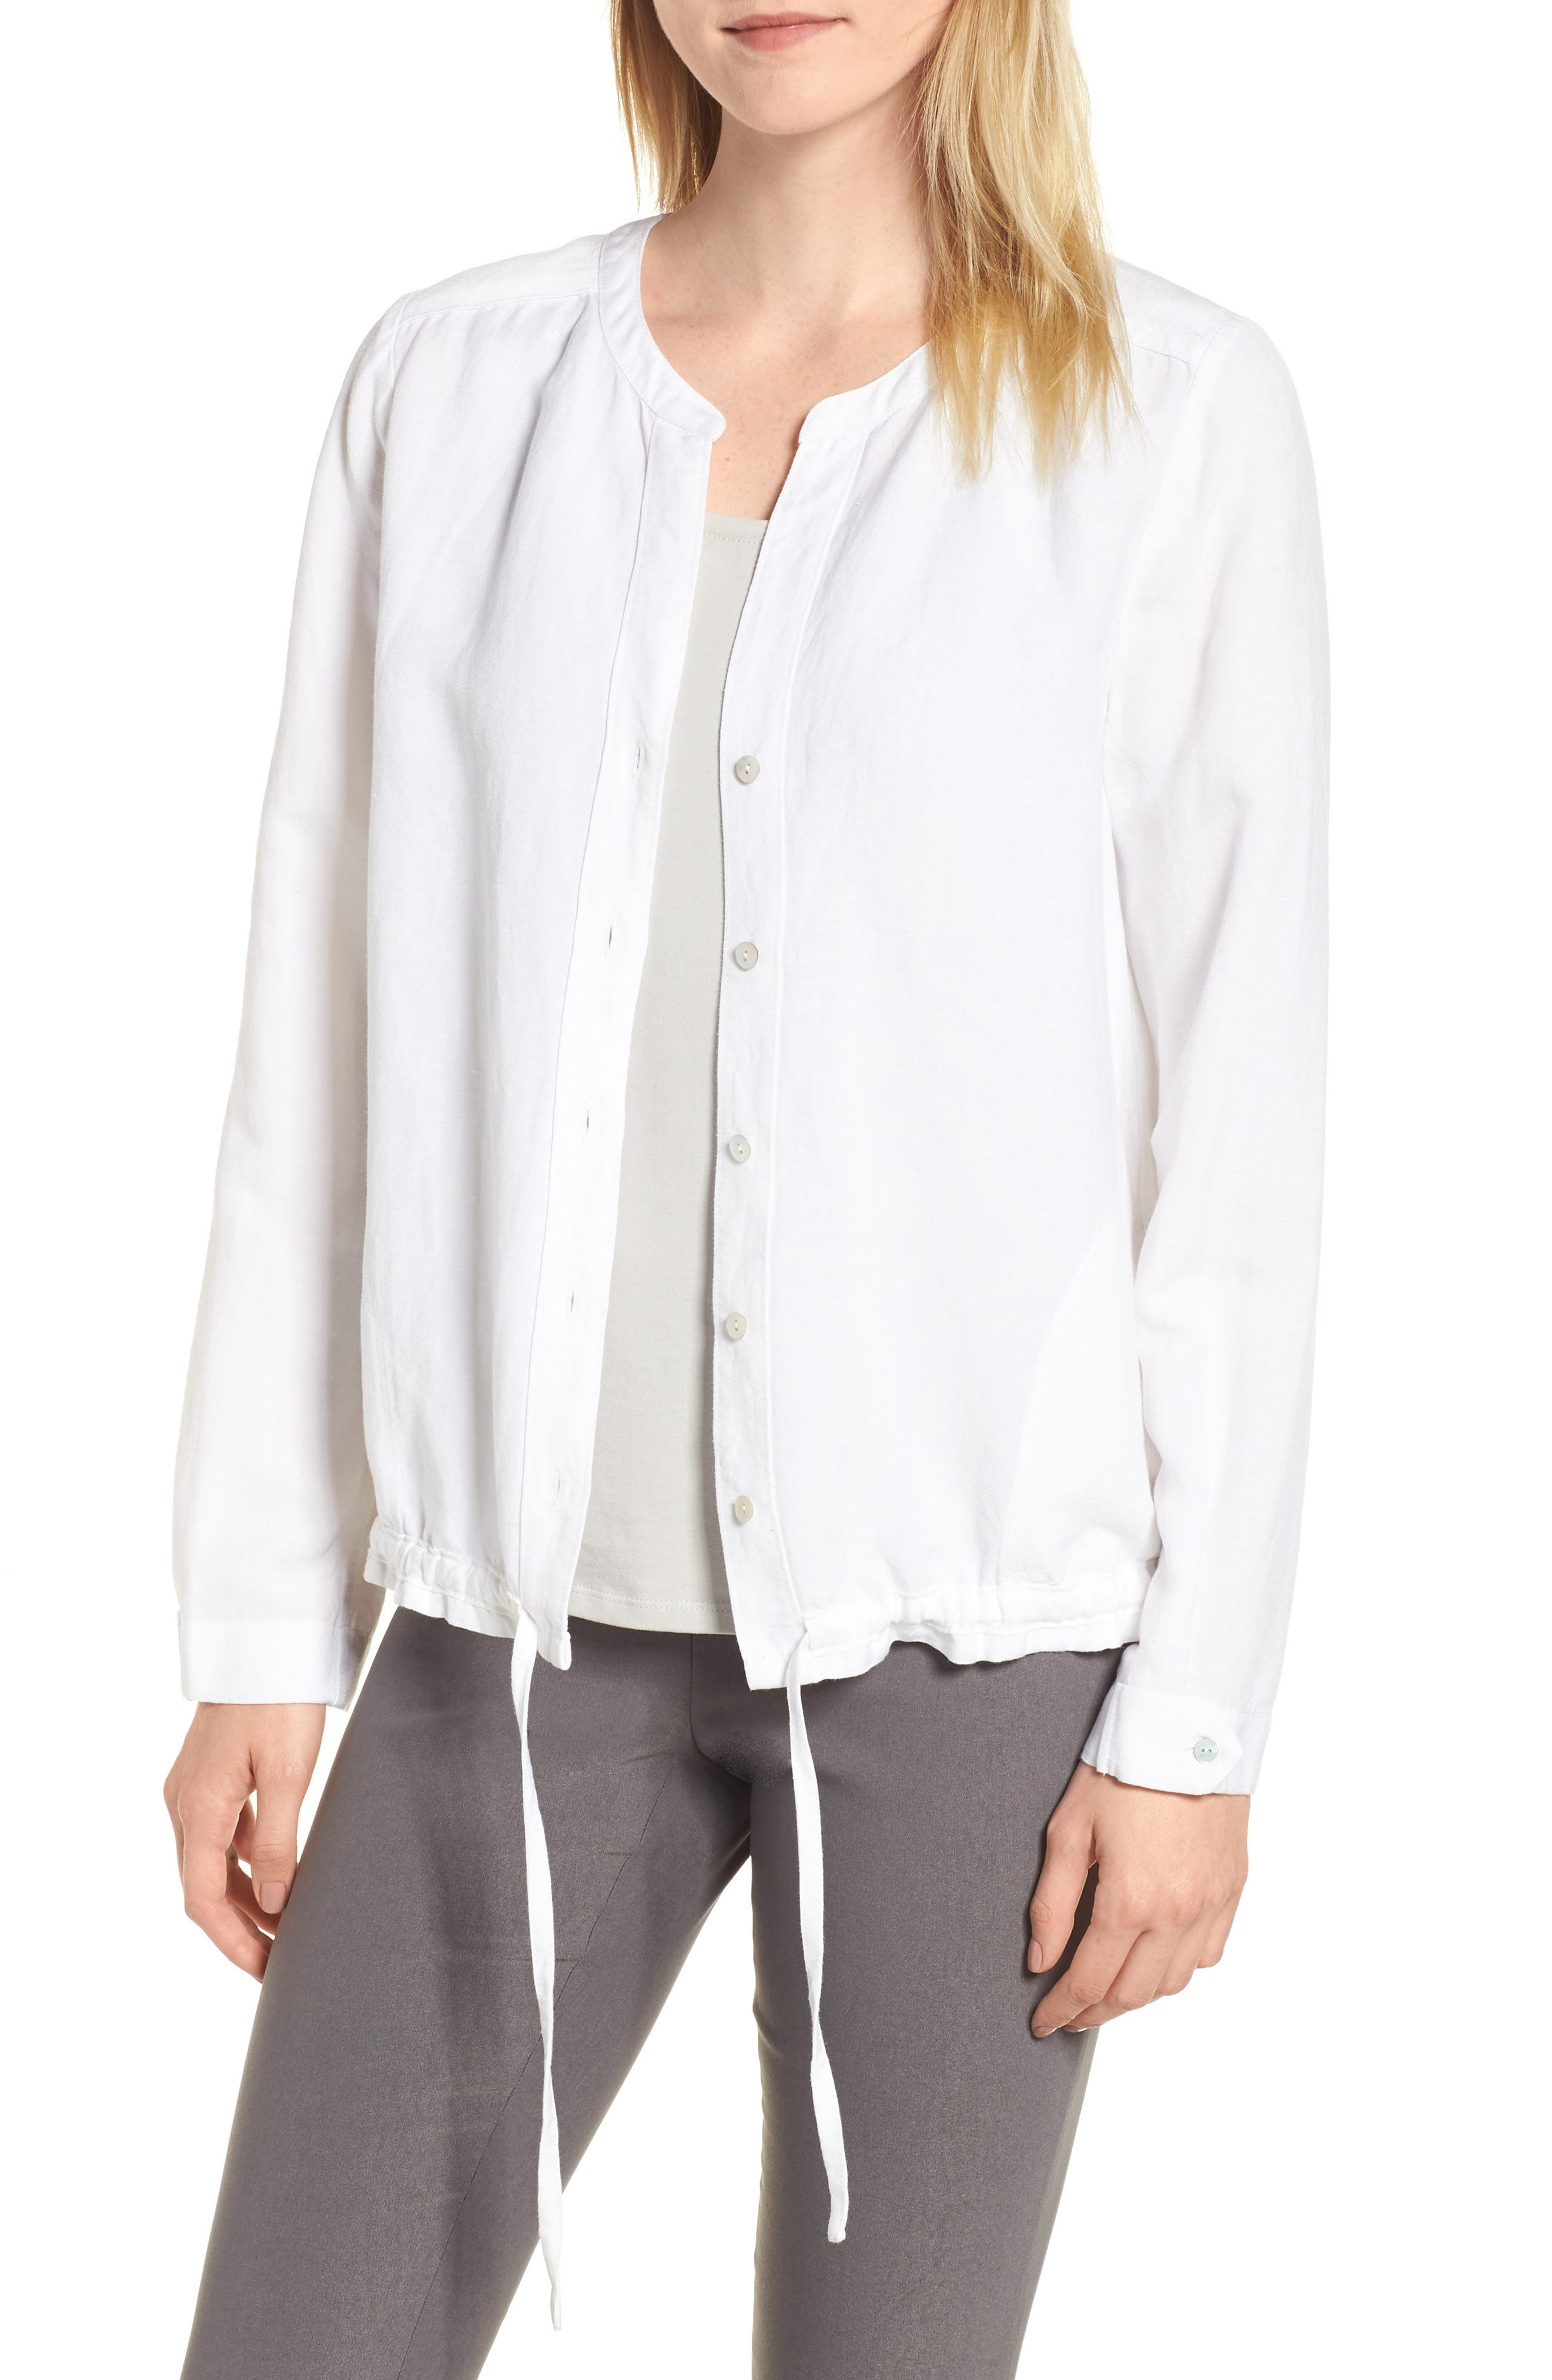 Homebound Linen Blend Drawstring Jacket,                             Main thumbnail 1, color,                             Paper White